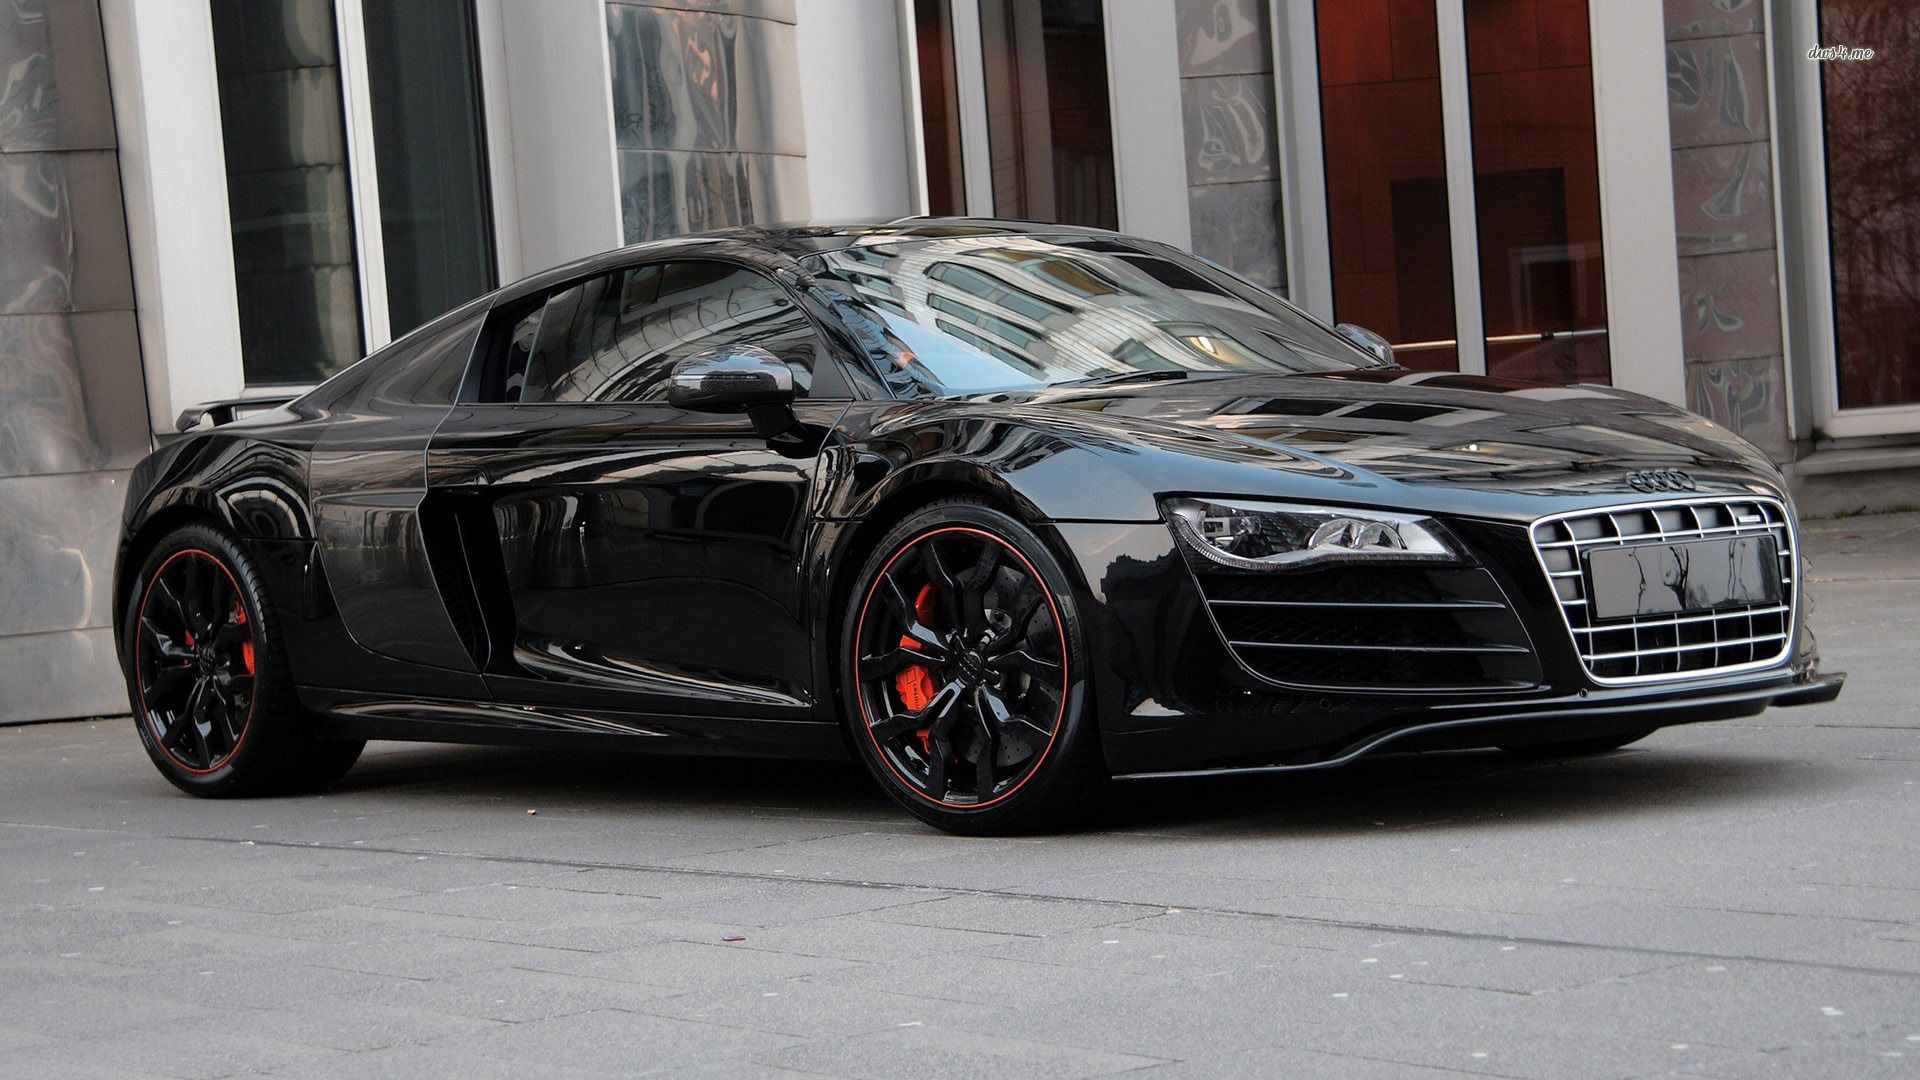 black audi r8 wappercar audir8 blackaudi audiphotography audicar awesome car photo. Black Bedroom Furniture Sets. Home Design Ideas